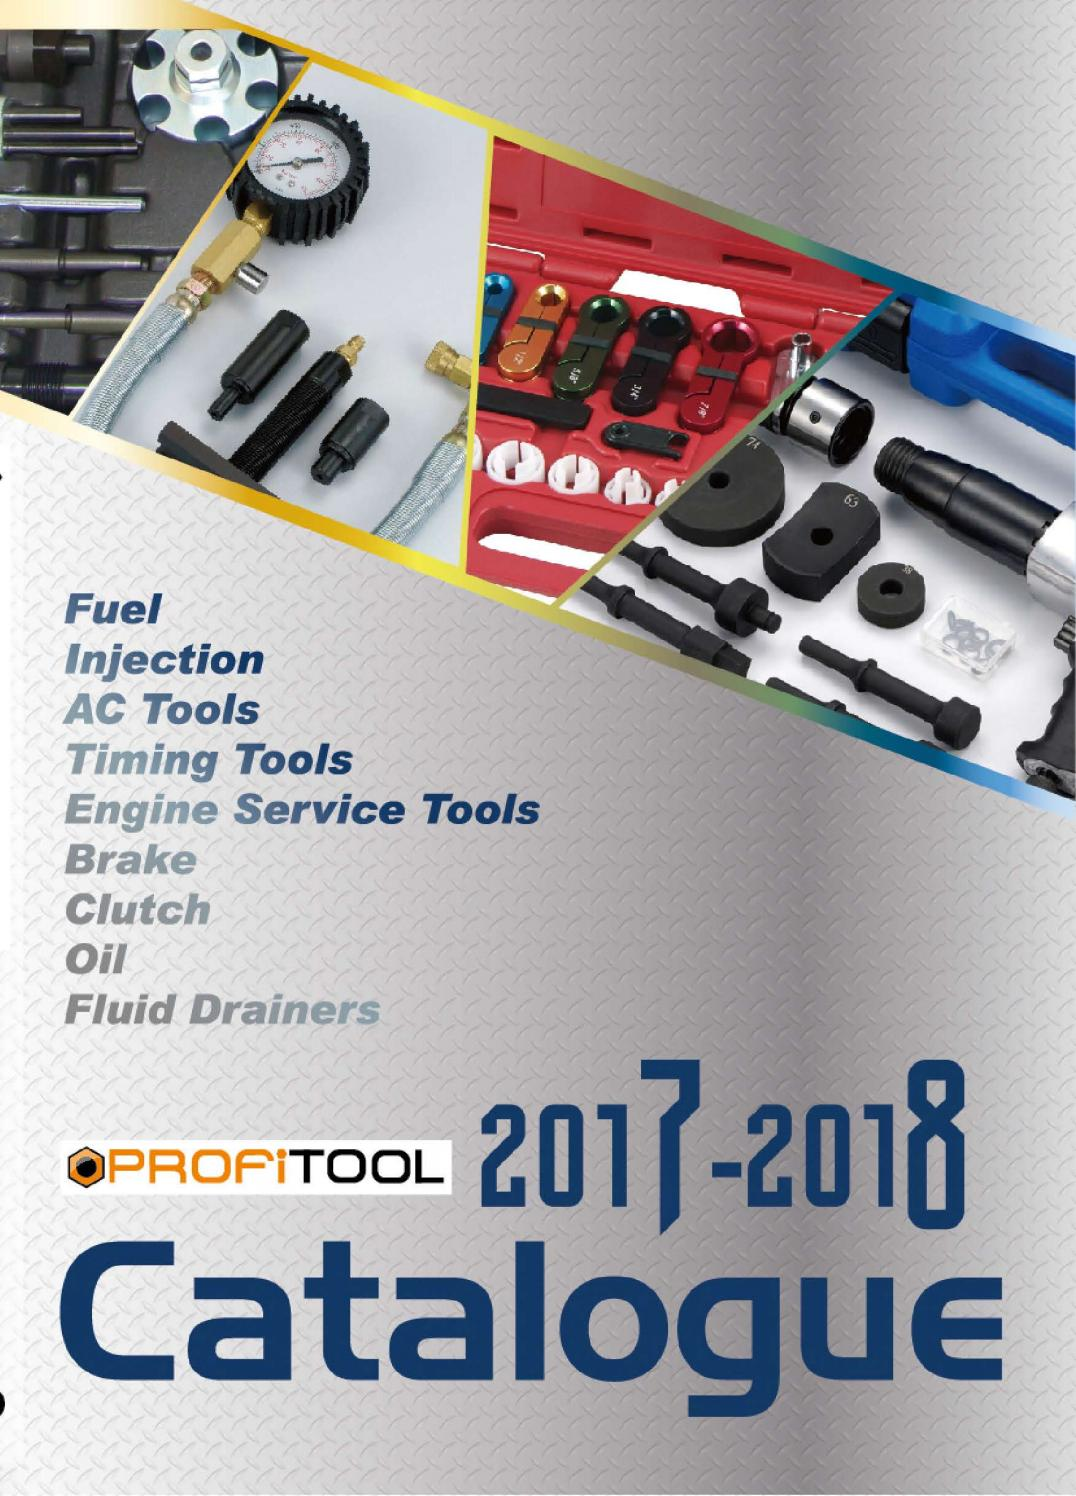 Profitool 2017 Catalogue By Intercars Sa Issuu 20012006 Mitsubishi Pajero Service Repair Workshop Manuals Down